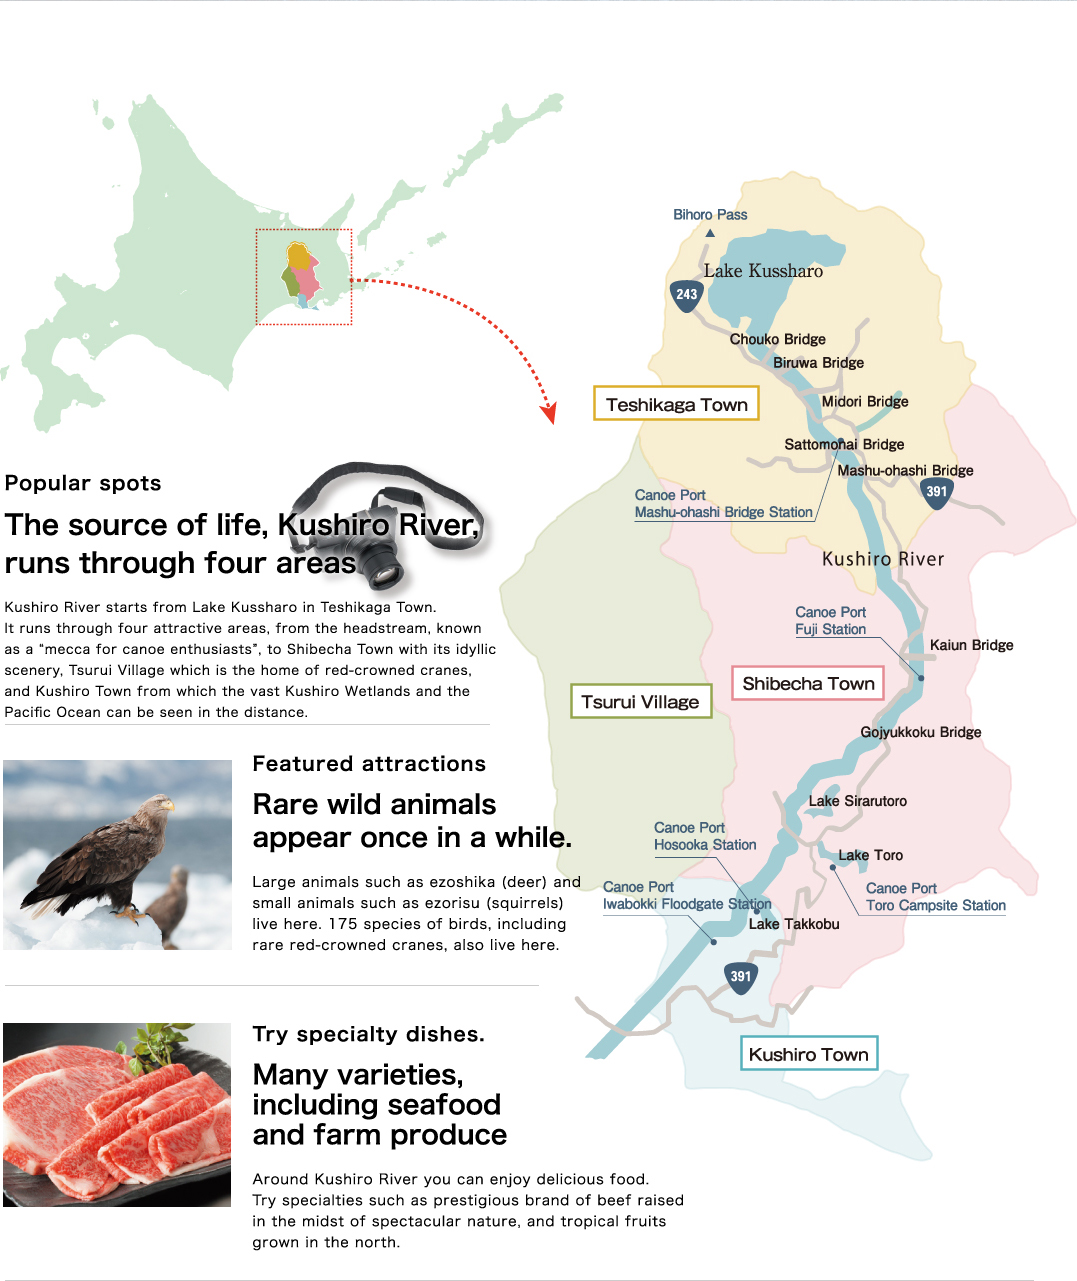 The source of life, Kushiro River, runs through four areas